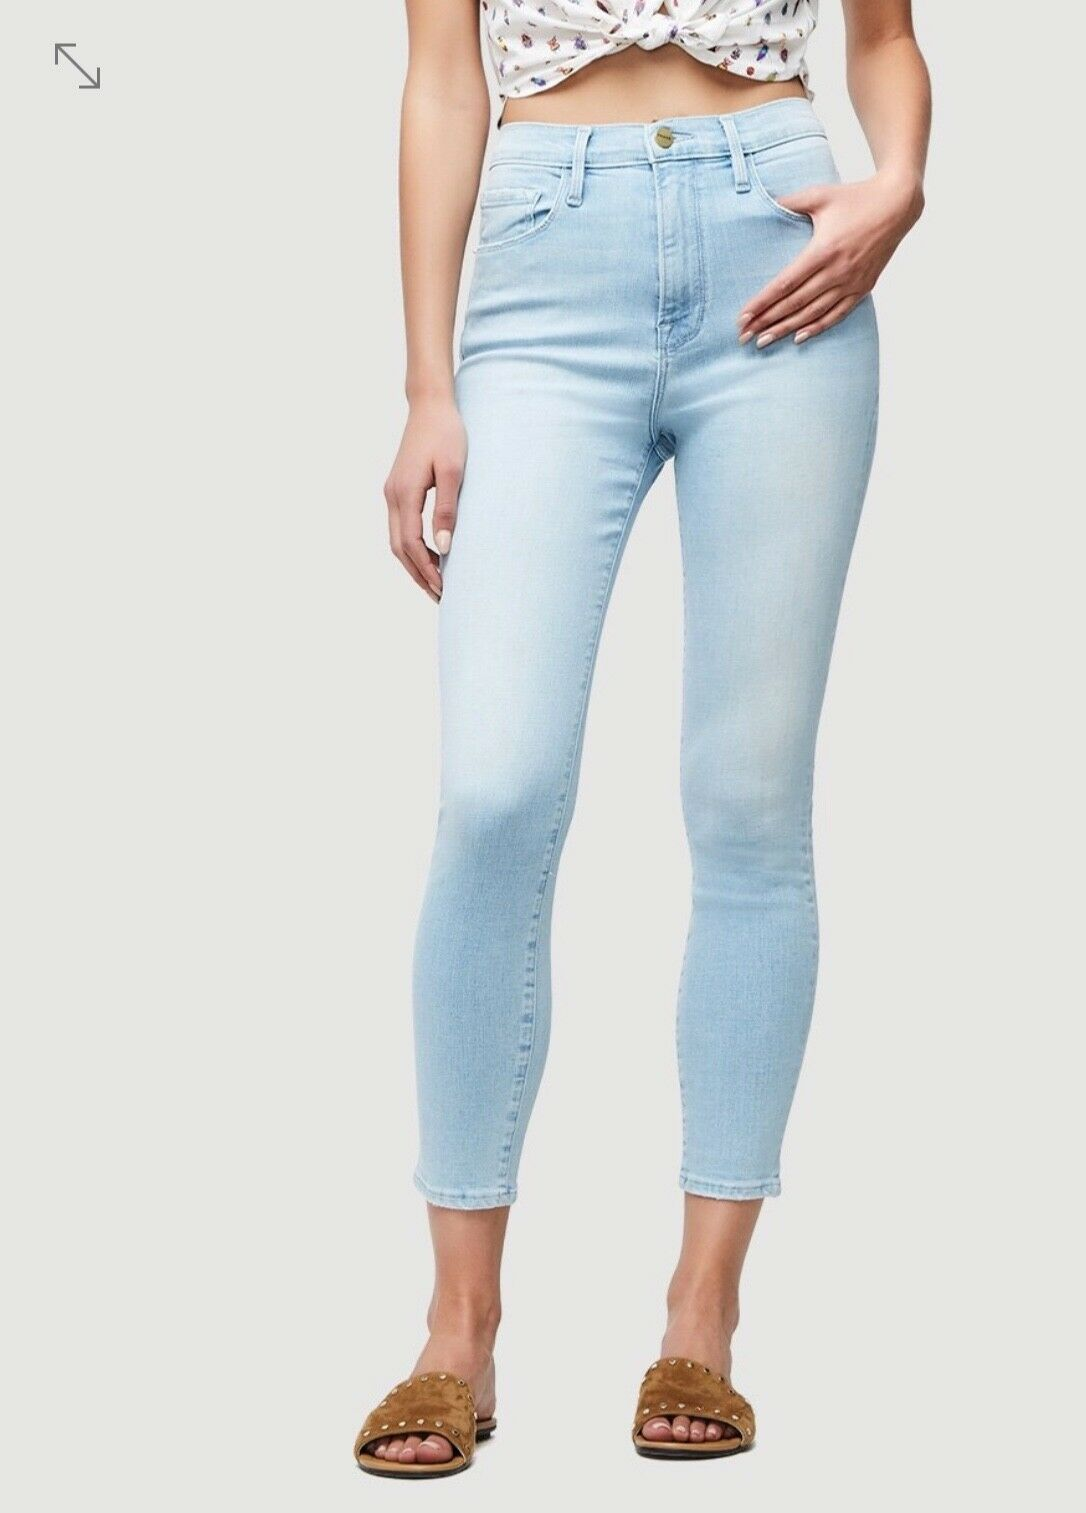 Frame Denim Womens High Rise Skinny Jean, Size 28, New without tags